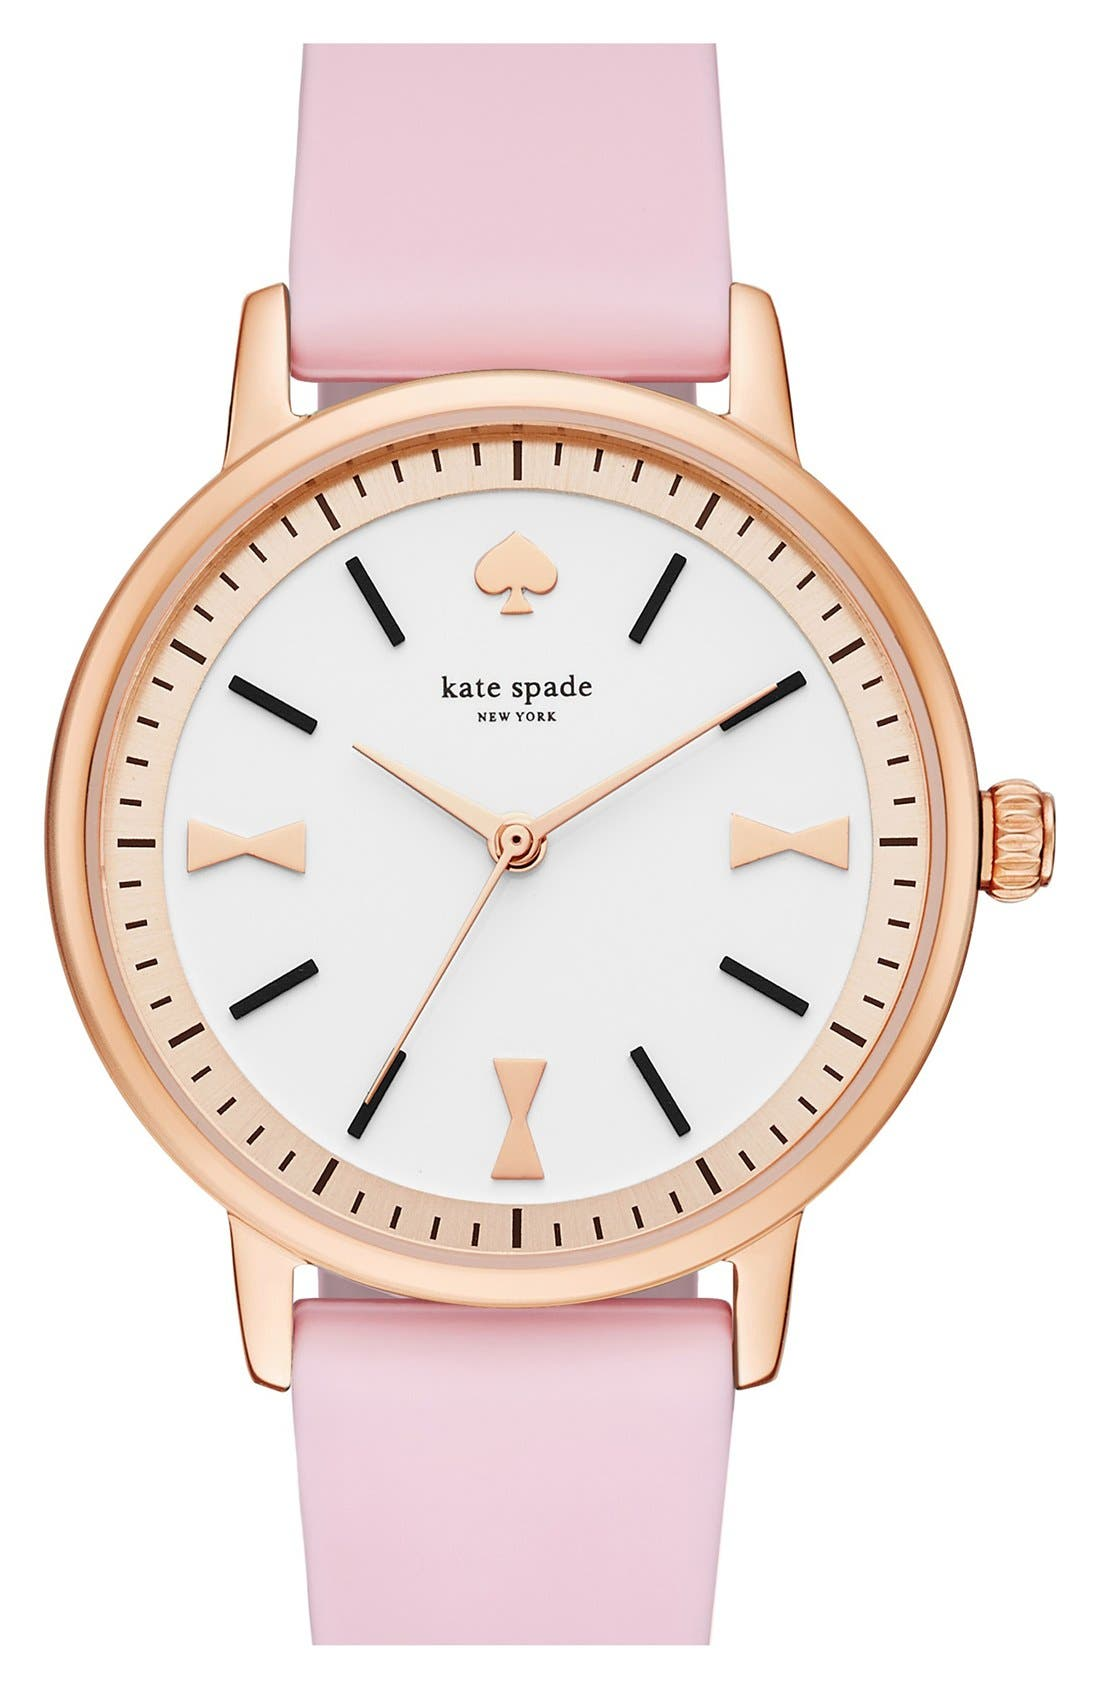 Main Image - kate spade new york 'crosby' silicone strap watch, 34mm